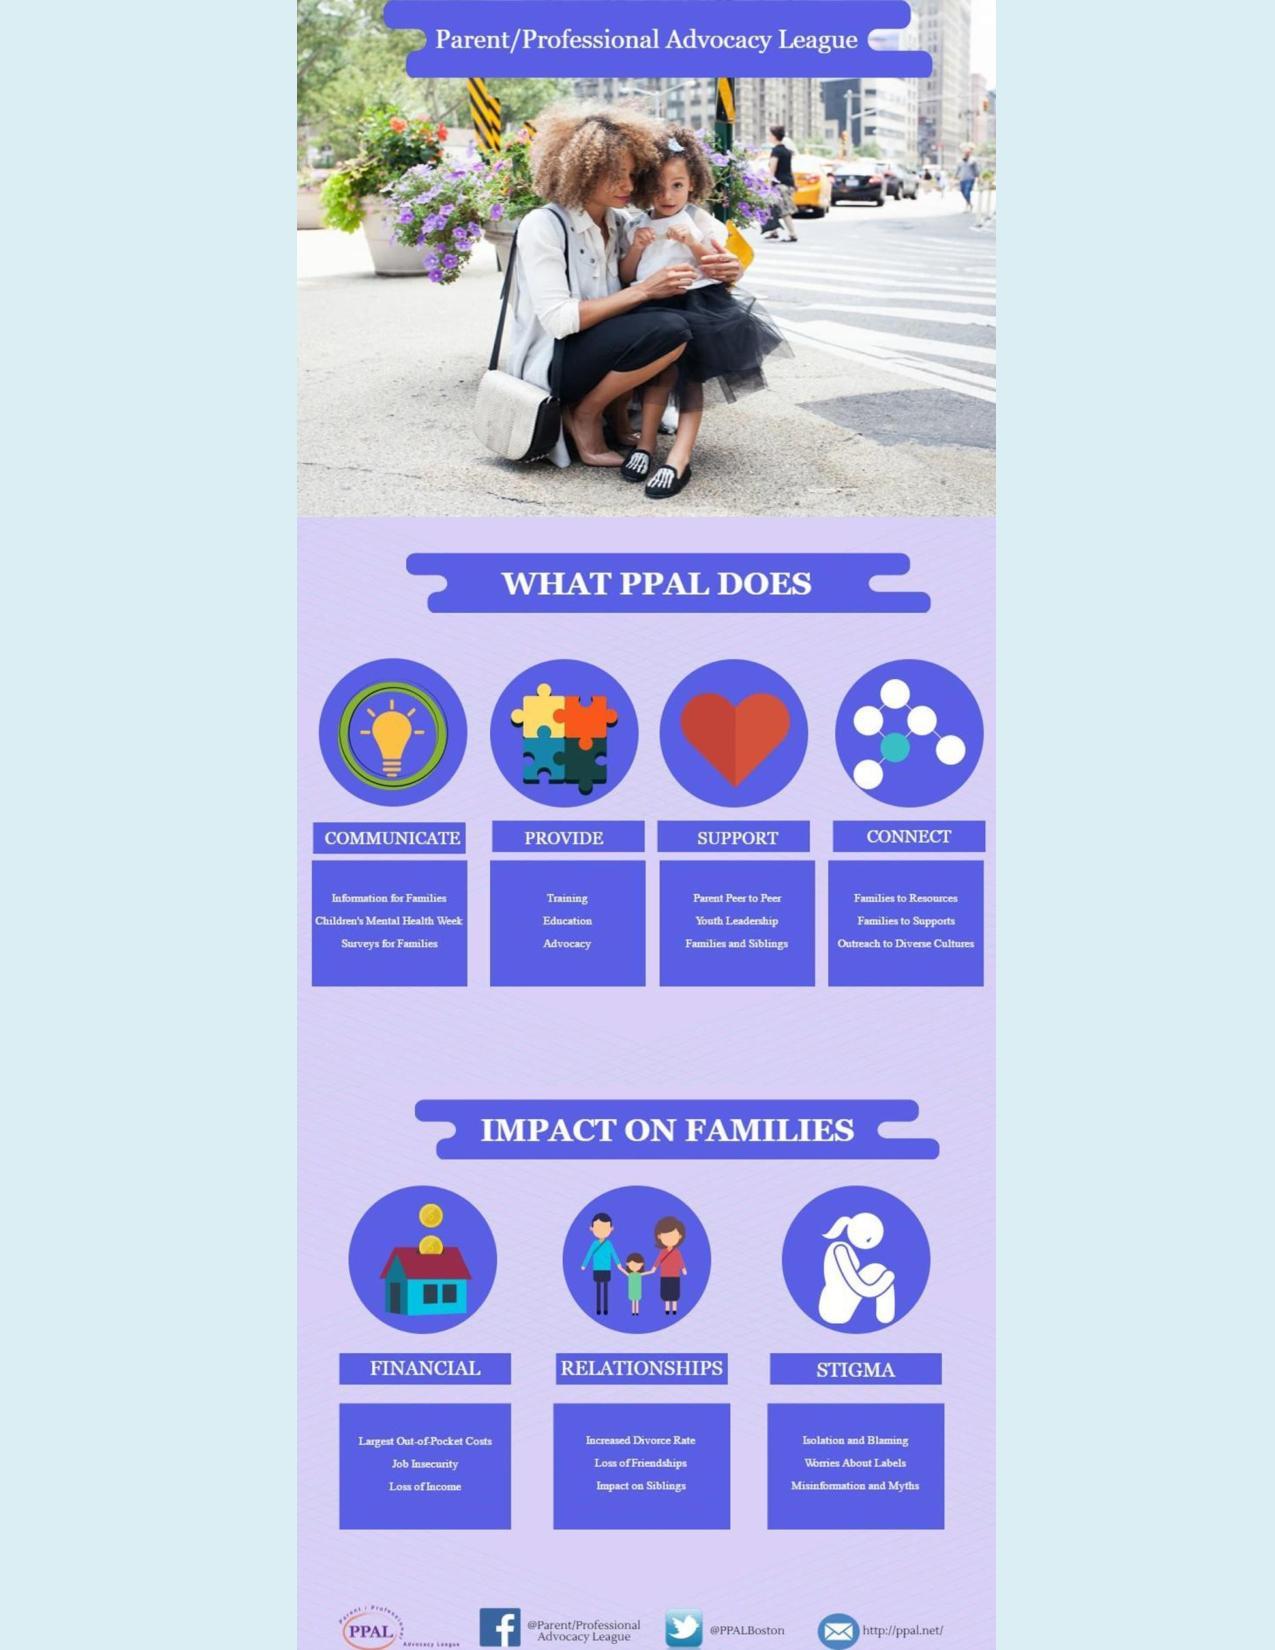 Infographic: What PPAL does and impact on families